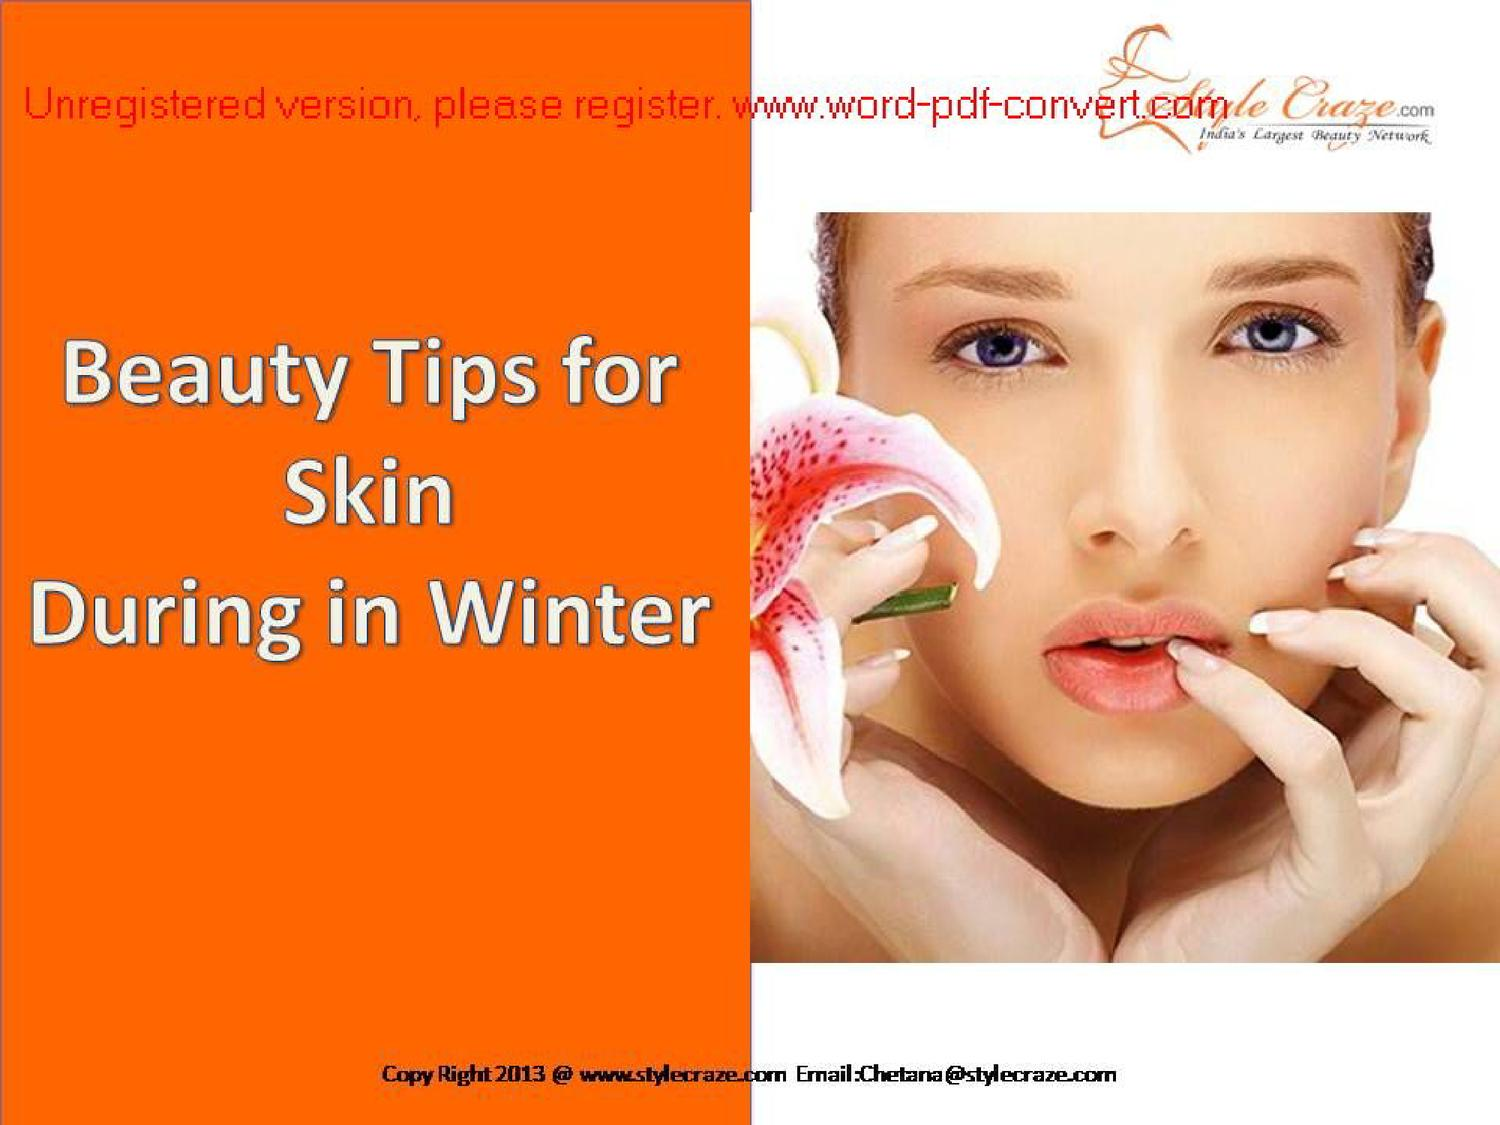 Beauty Tips for Skin During in Winter by Stylecraze Craze - issuu